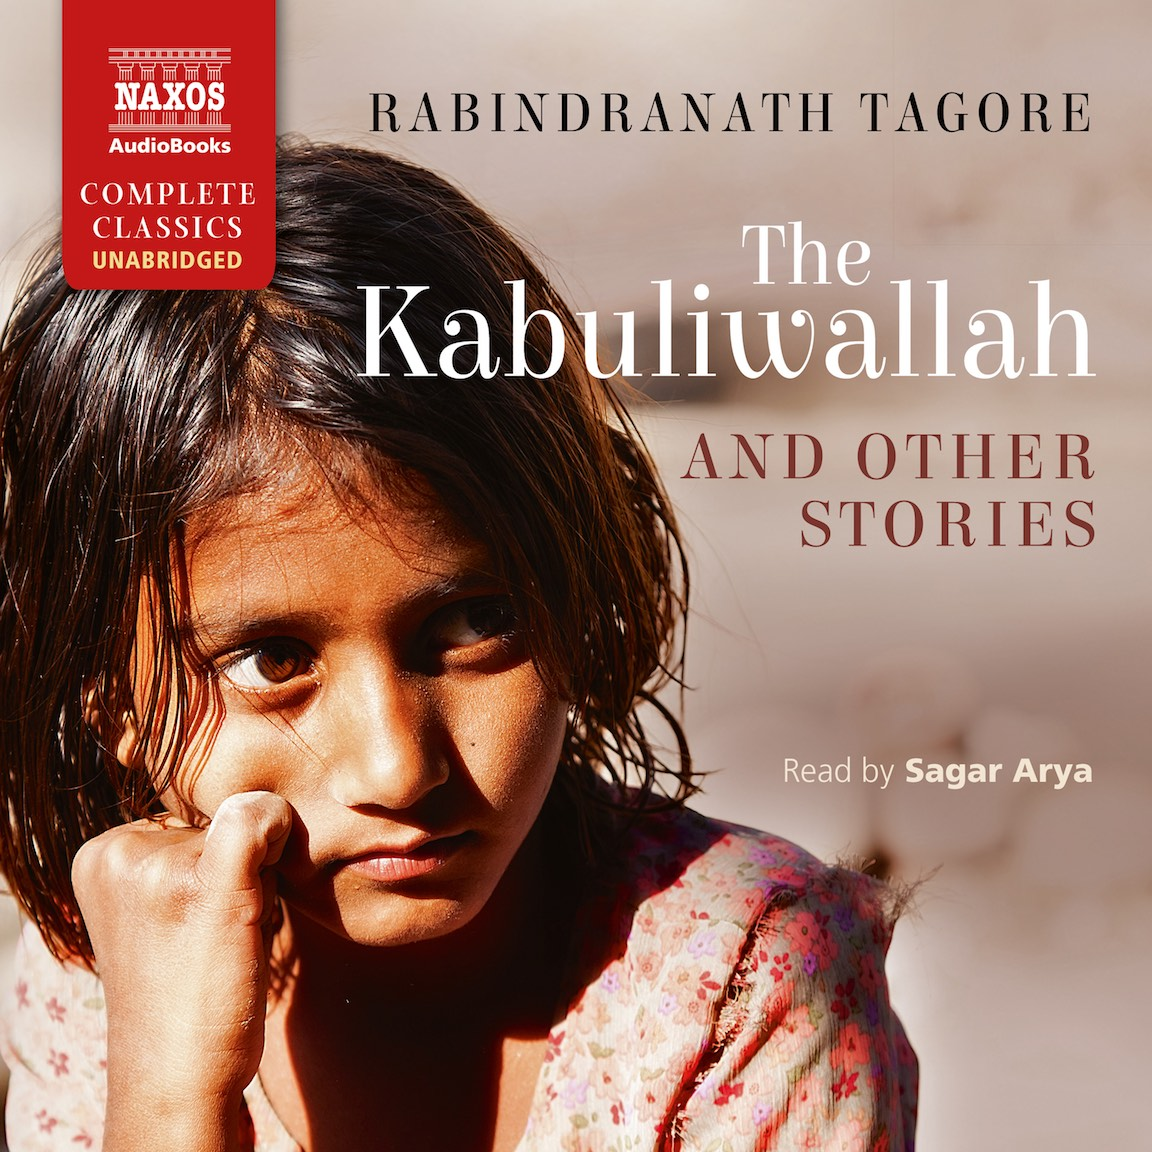 The Kabuliwallah and Other Stories (unabridged)